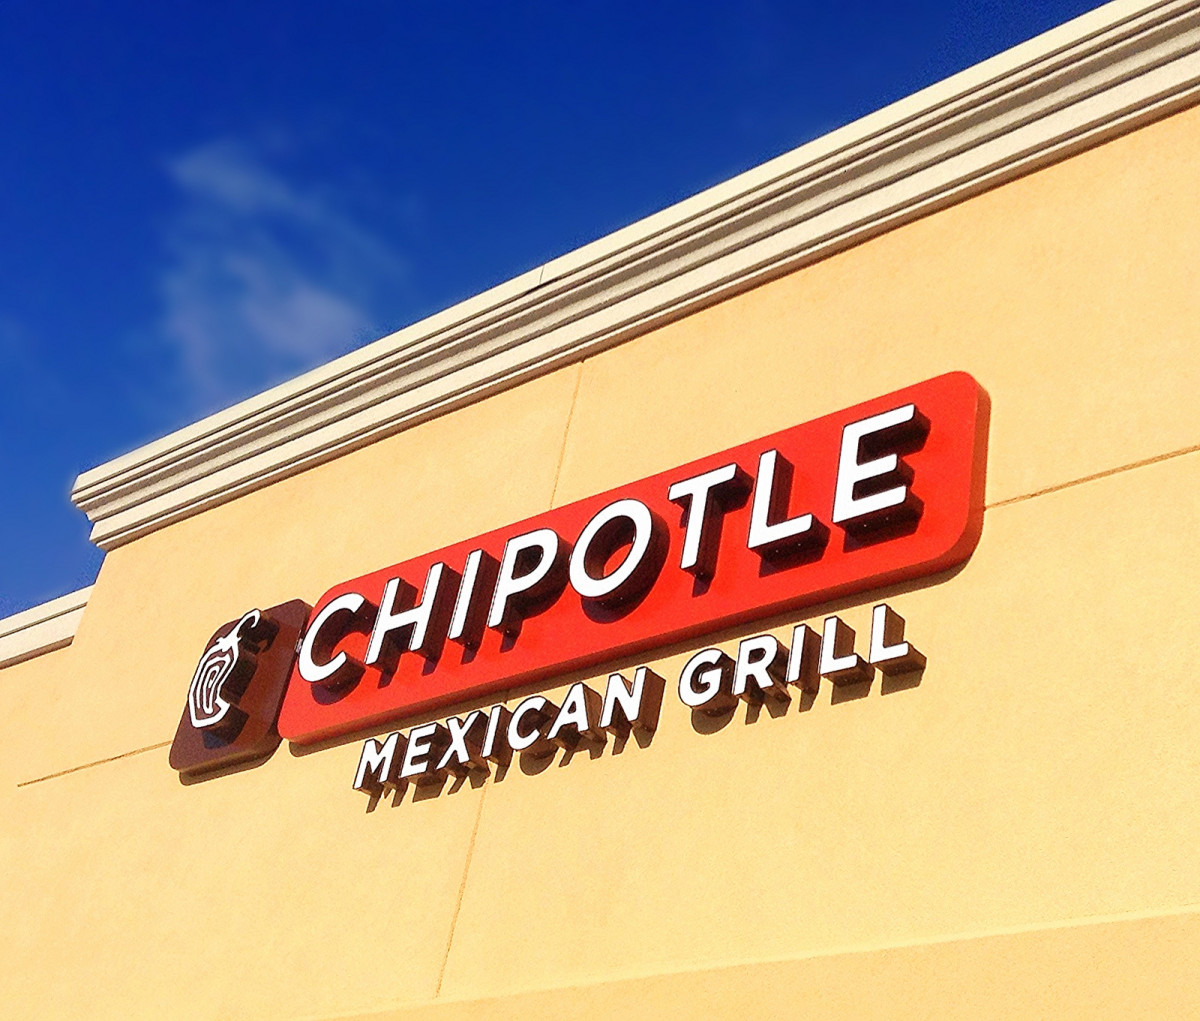 Chipotle Mexican Grill Faces Class Action Lawsuit in Response to GMO-Free Advertising Claims